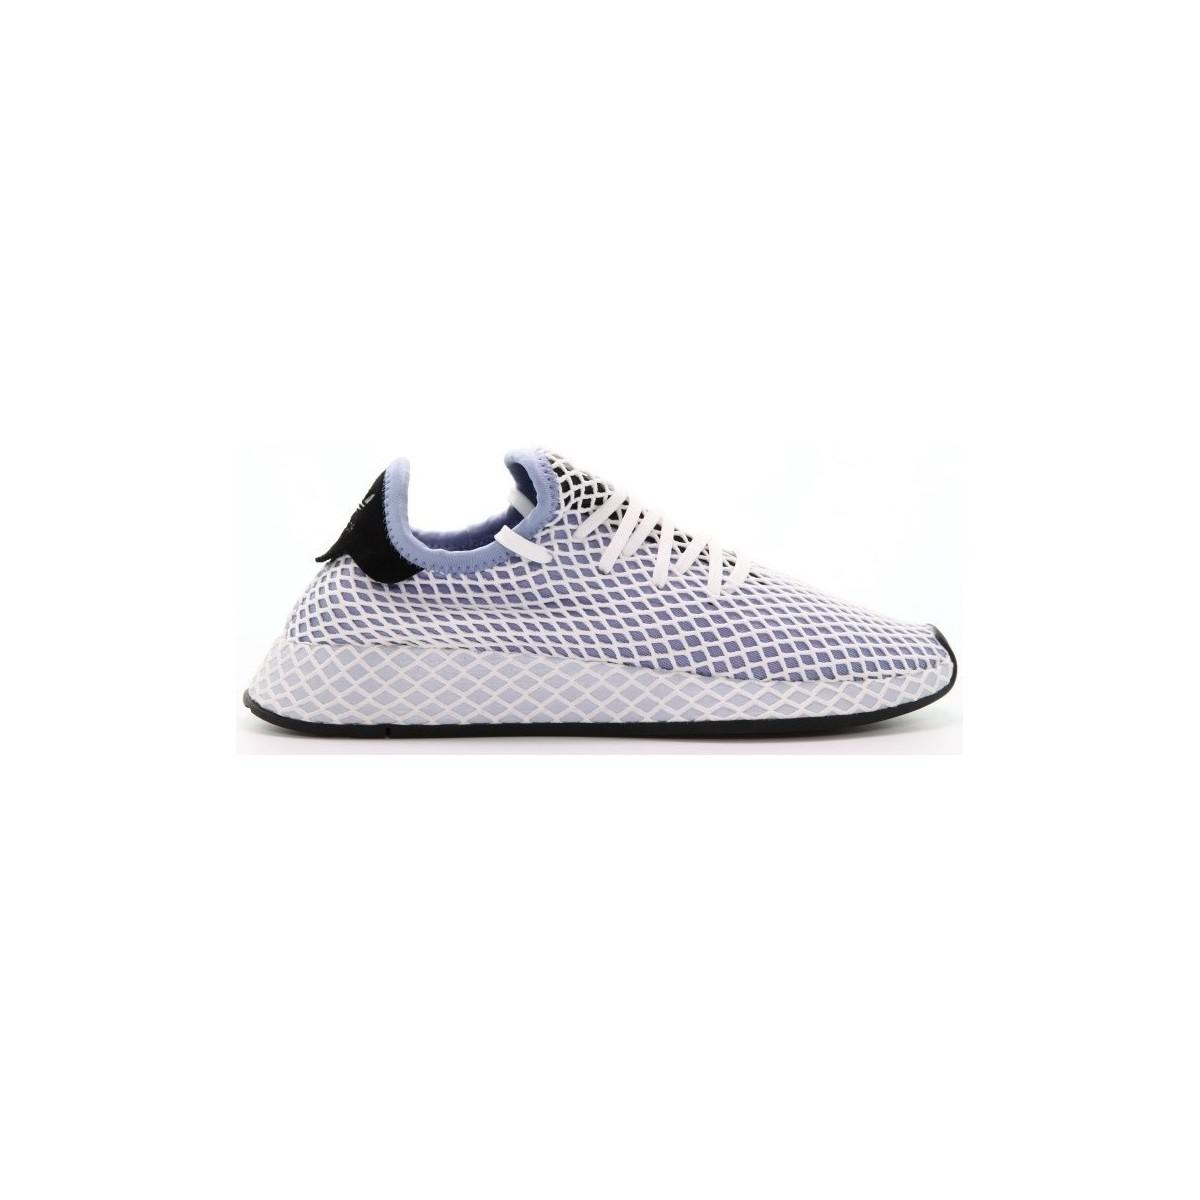 quality design 6d72b 0a425 Adidas Deerupt Runner Womens Shoes (trainers) In Multicolour